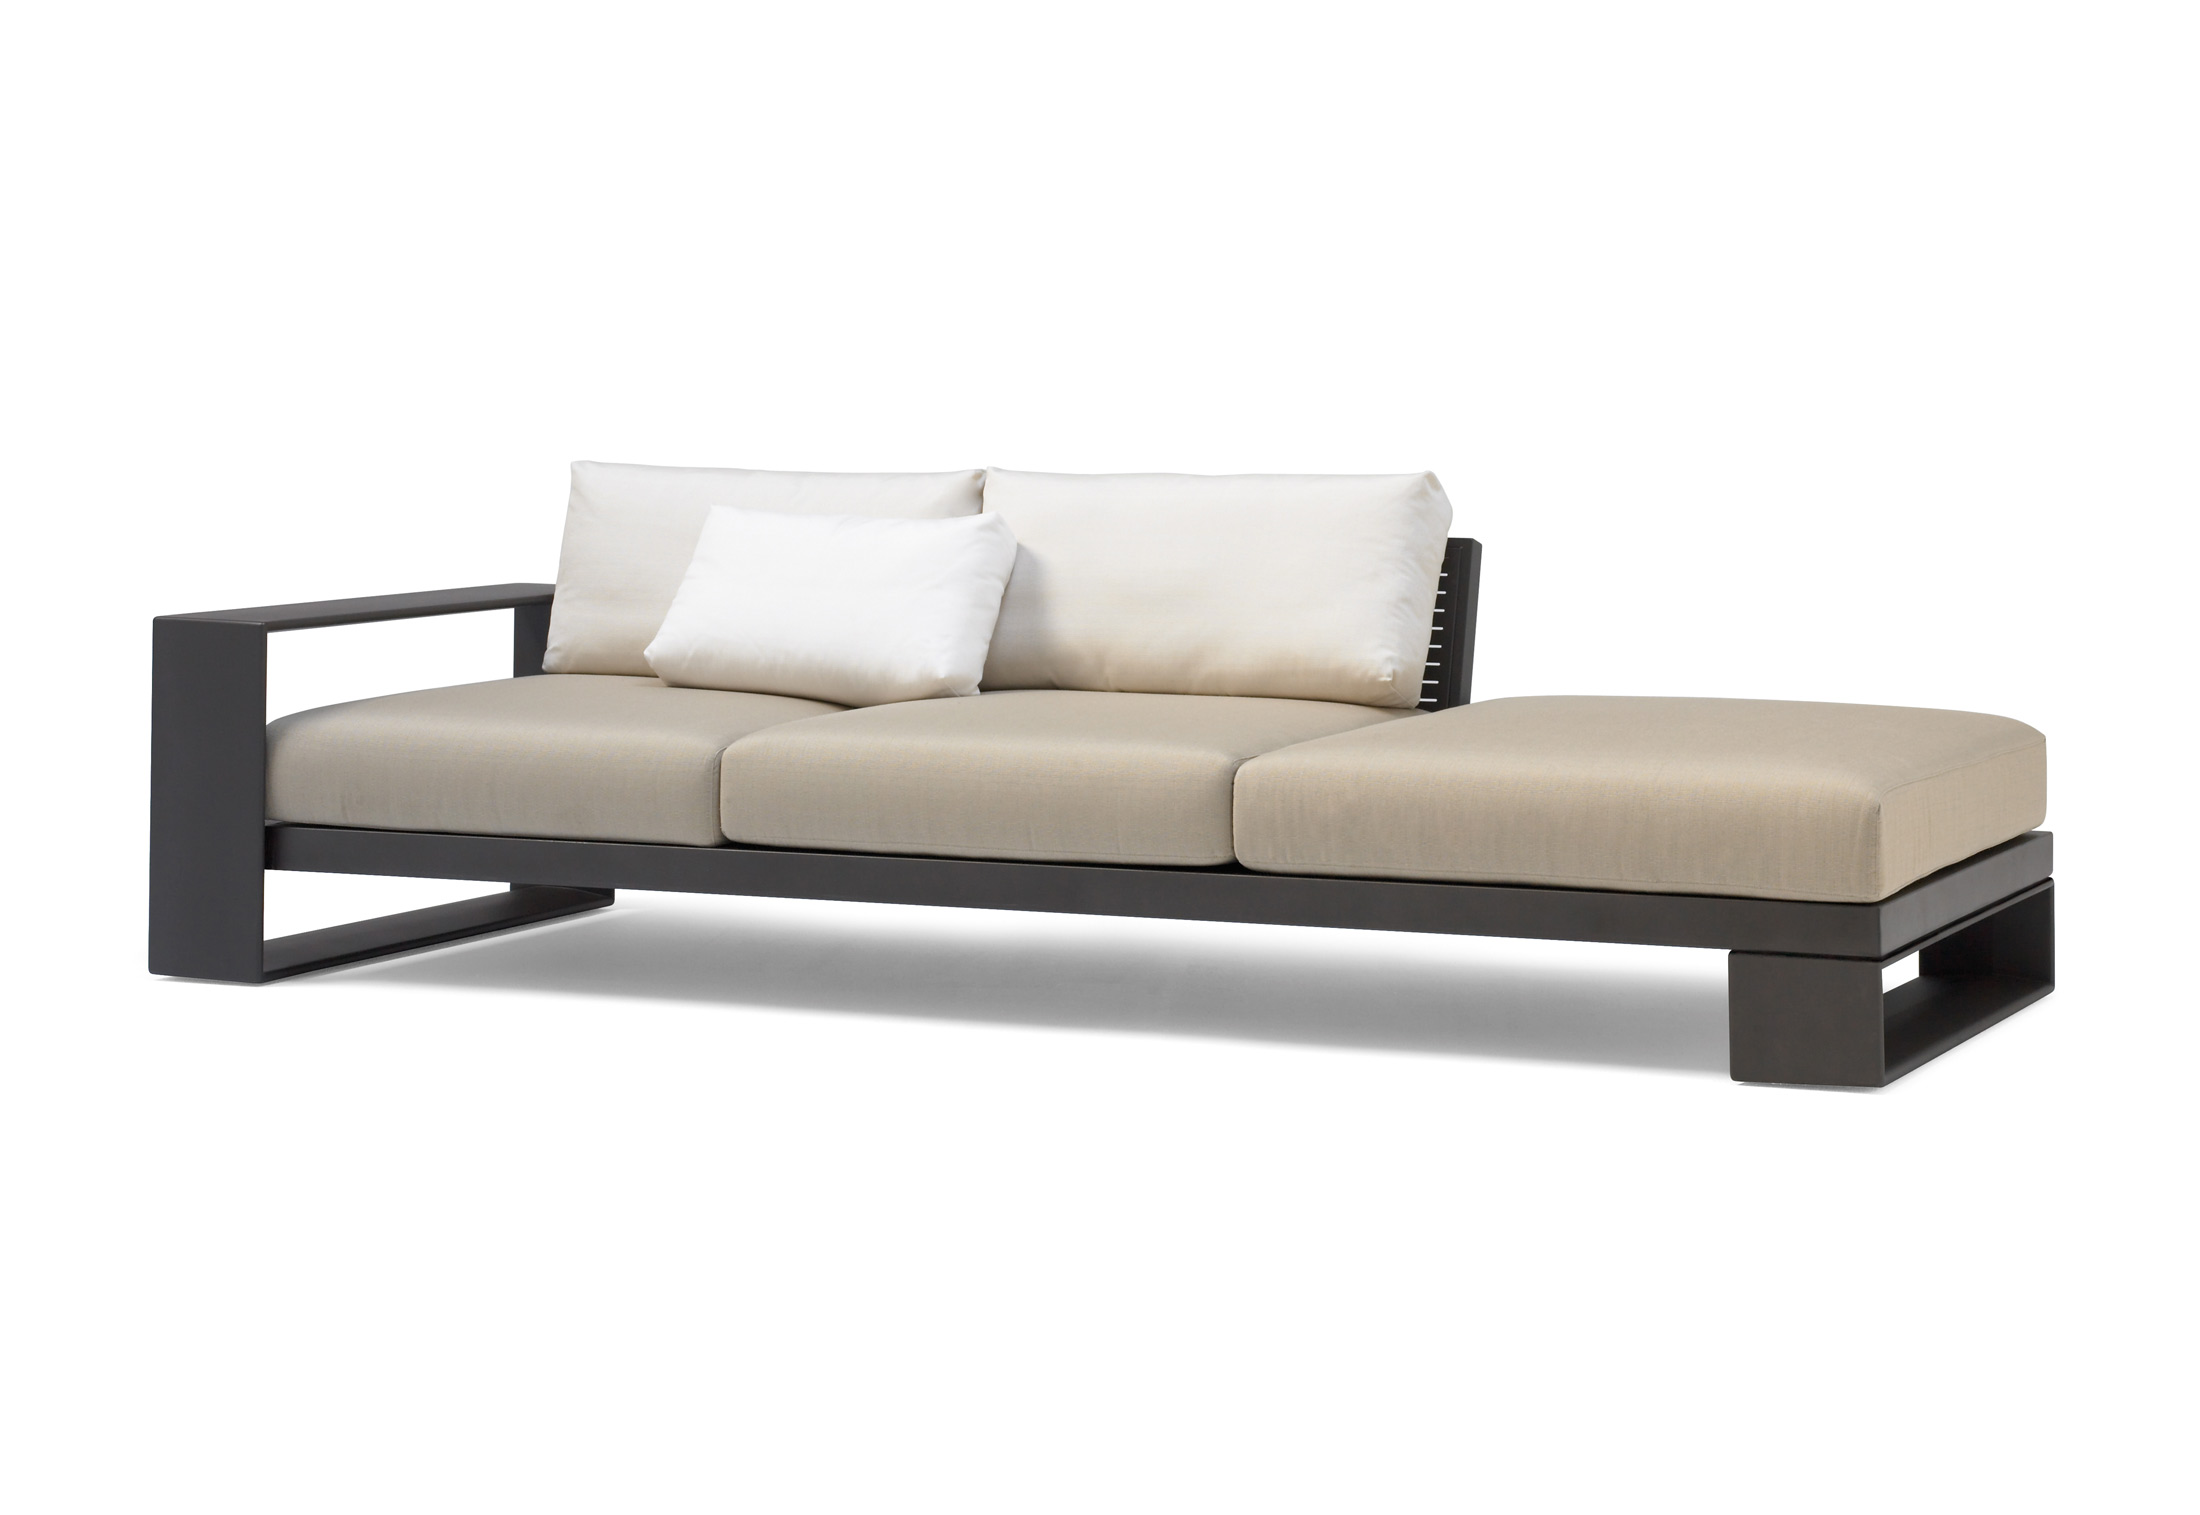 Landscape Alu Sofa By Andreu World Stylepark